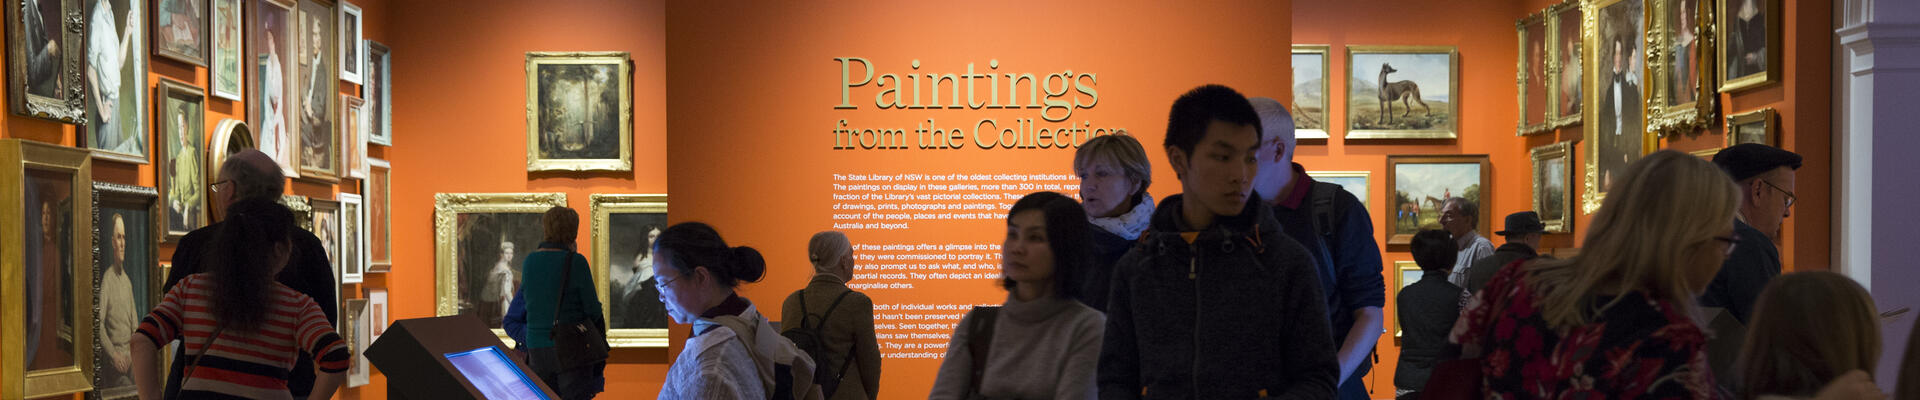 A group of people in a painting gallery